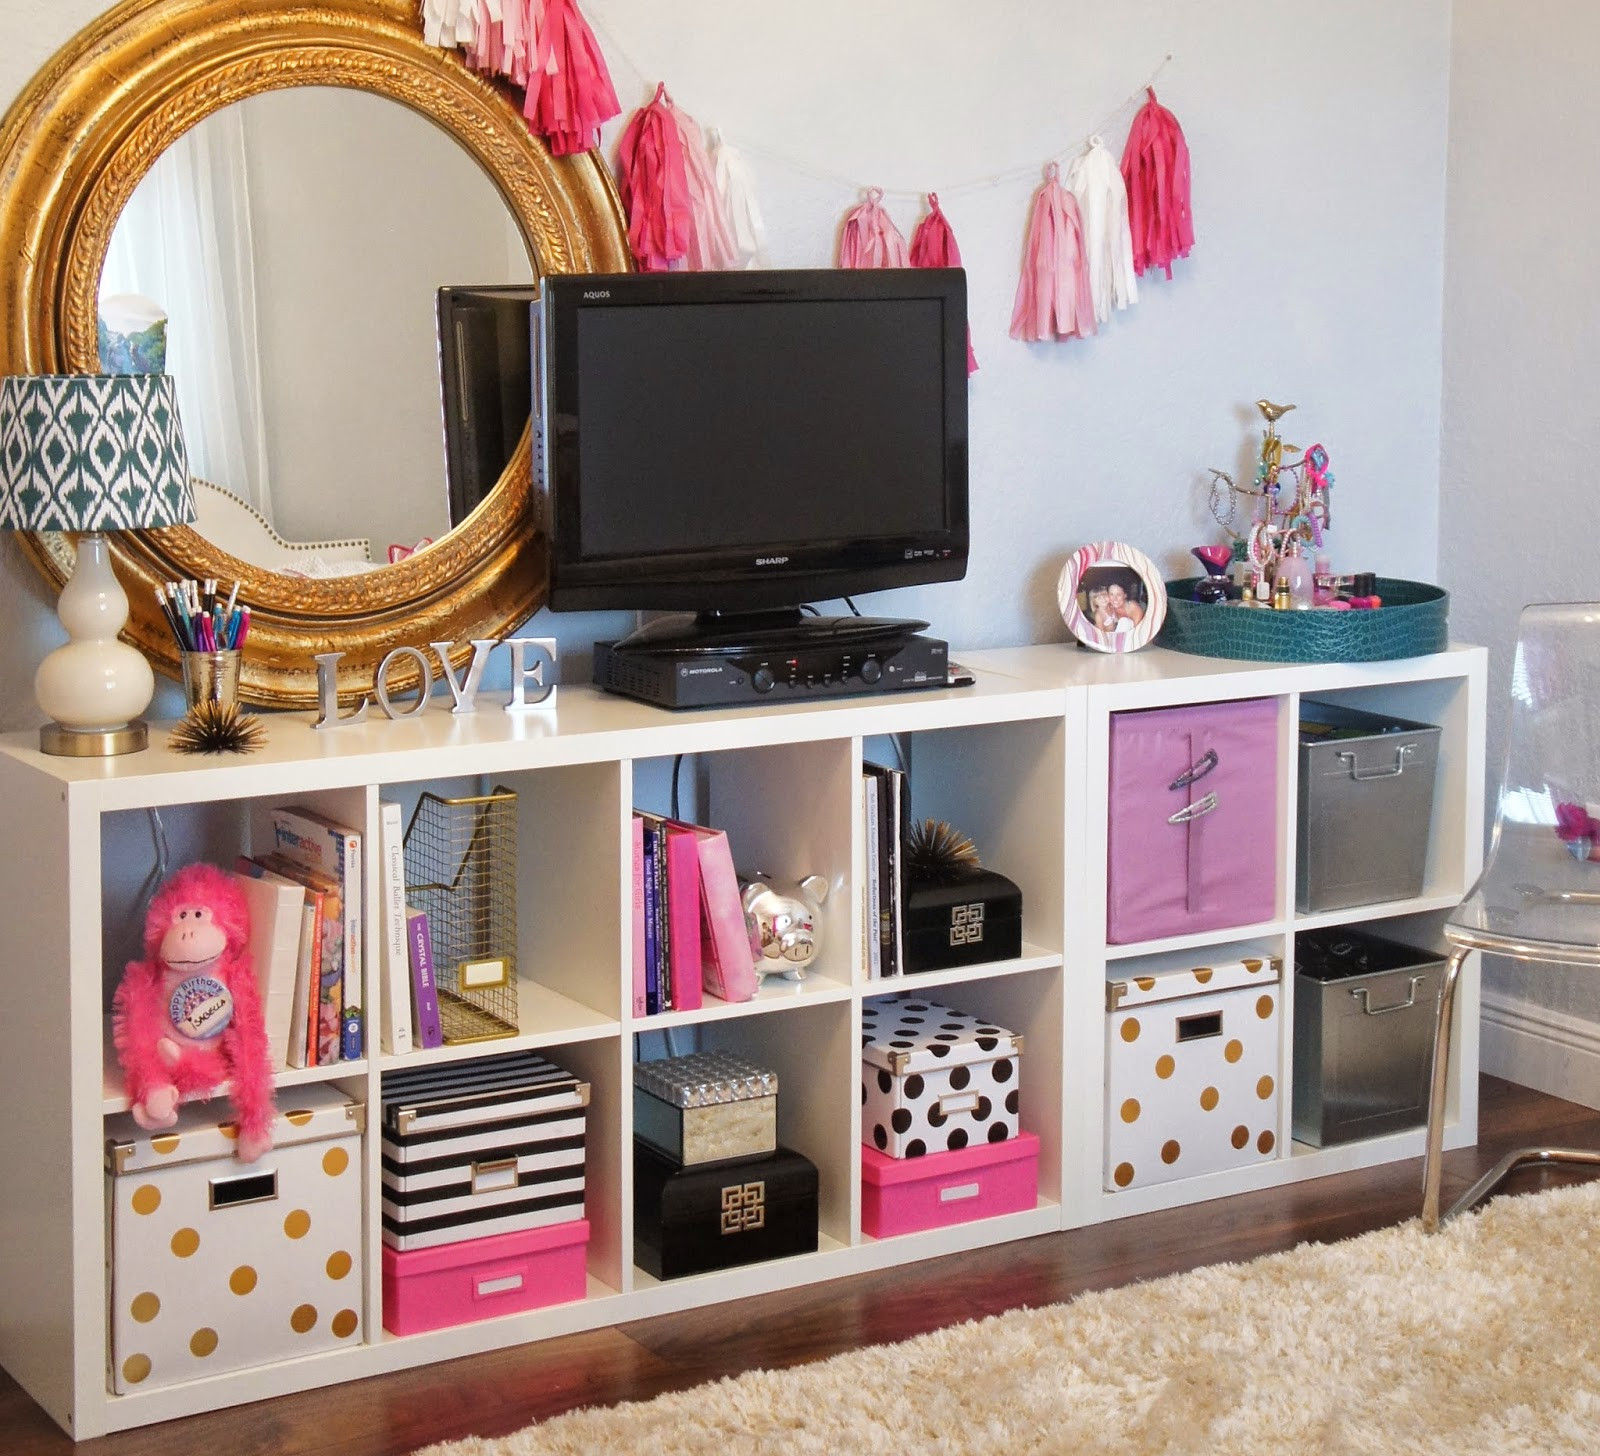 Best ideas about DIY Kids Room . Save or Pin The Cuban In My Coffee DIY Kate Spade Inspired Ikea Now.